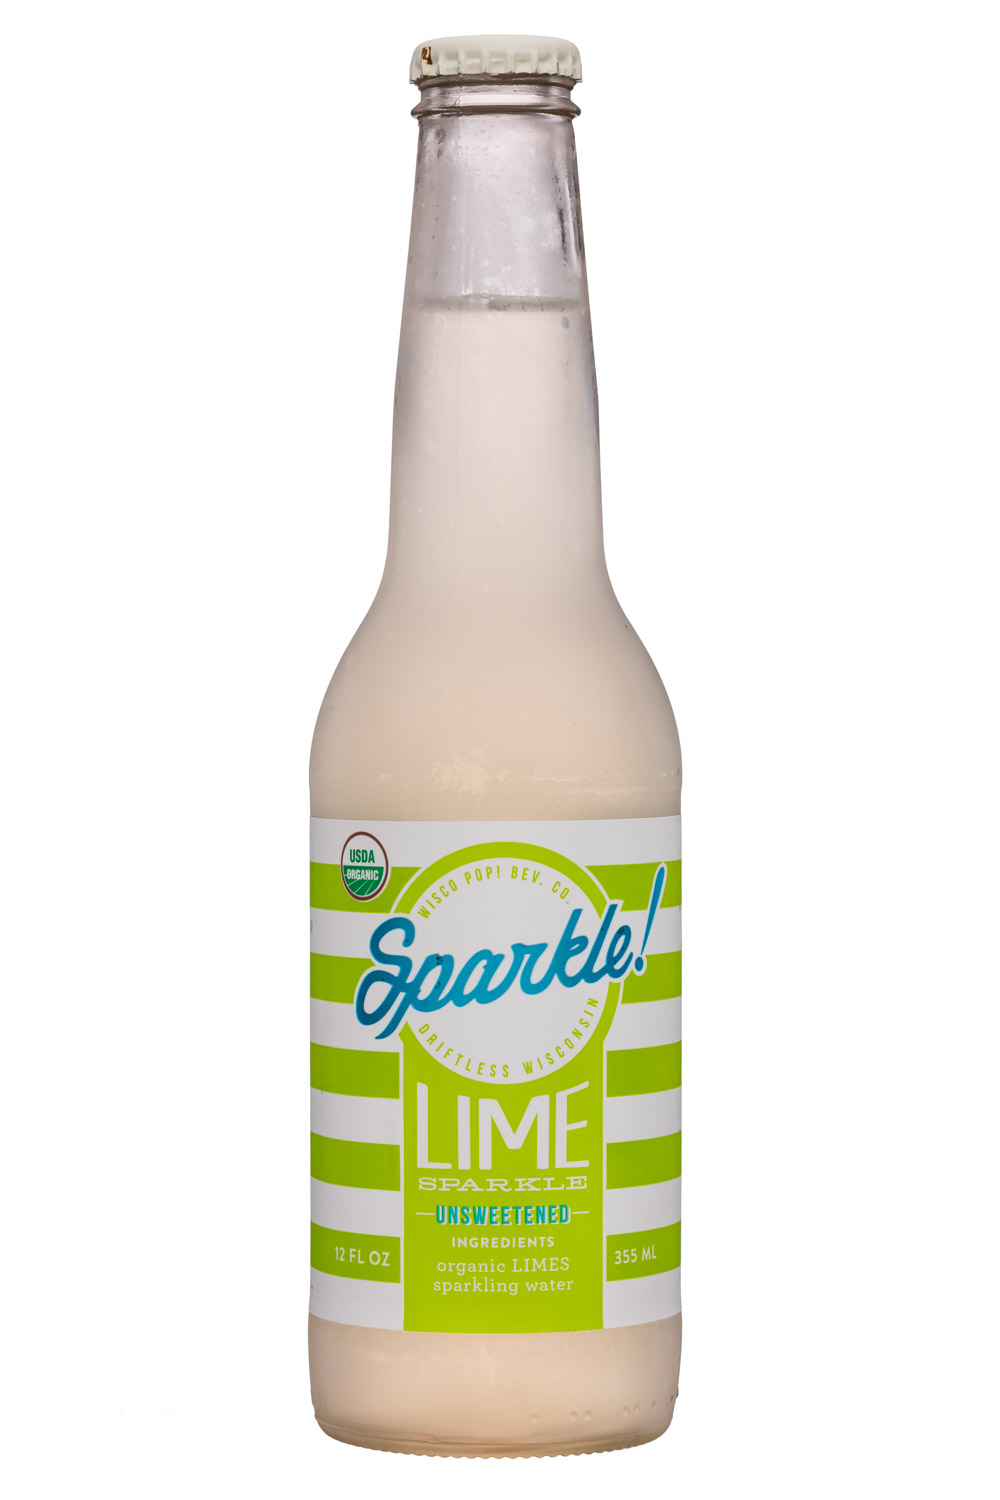 Lime Unsweetened (2018)